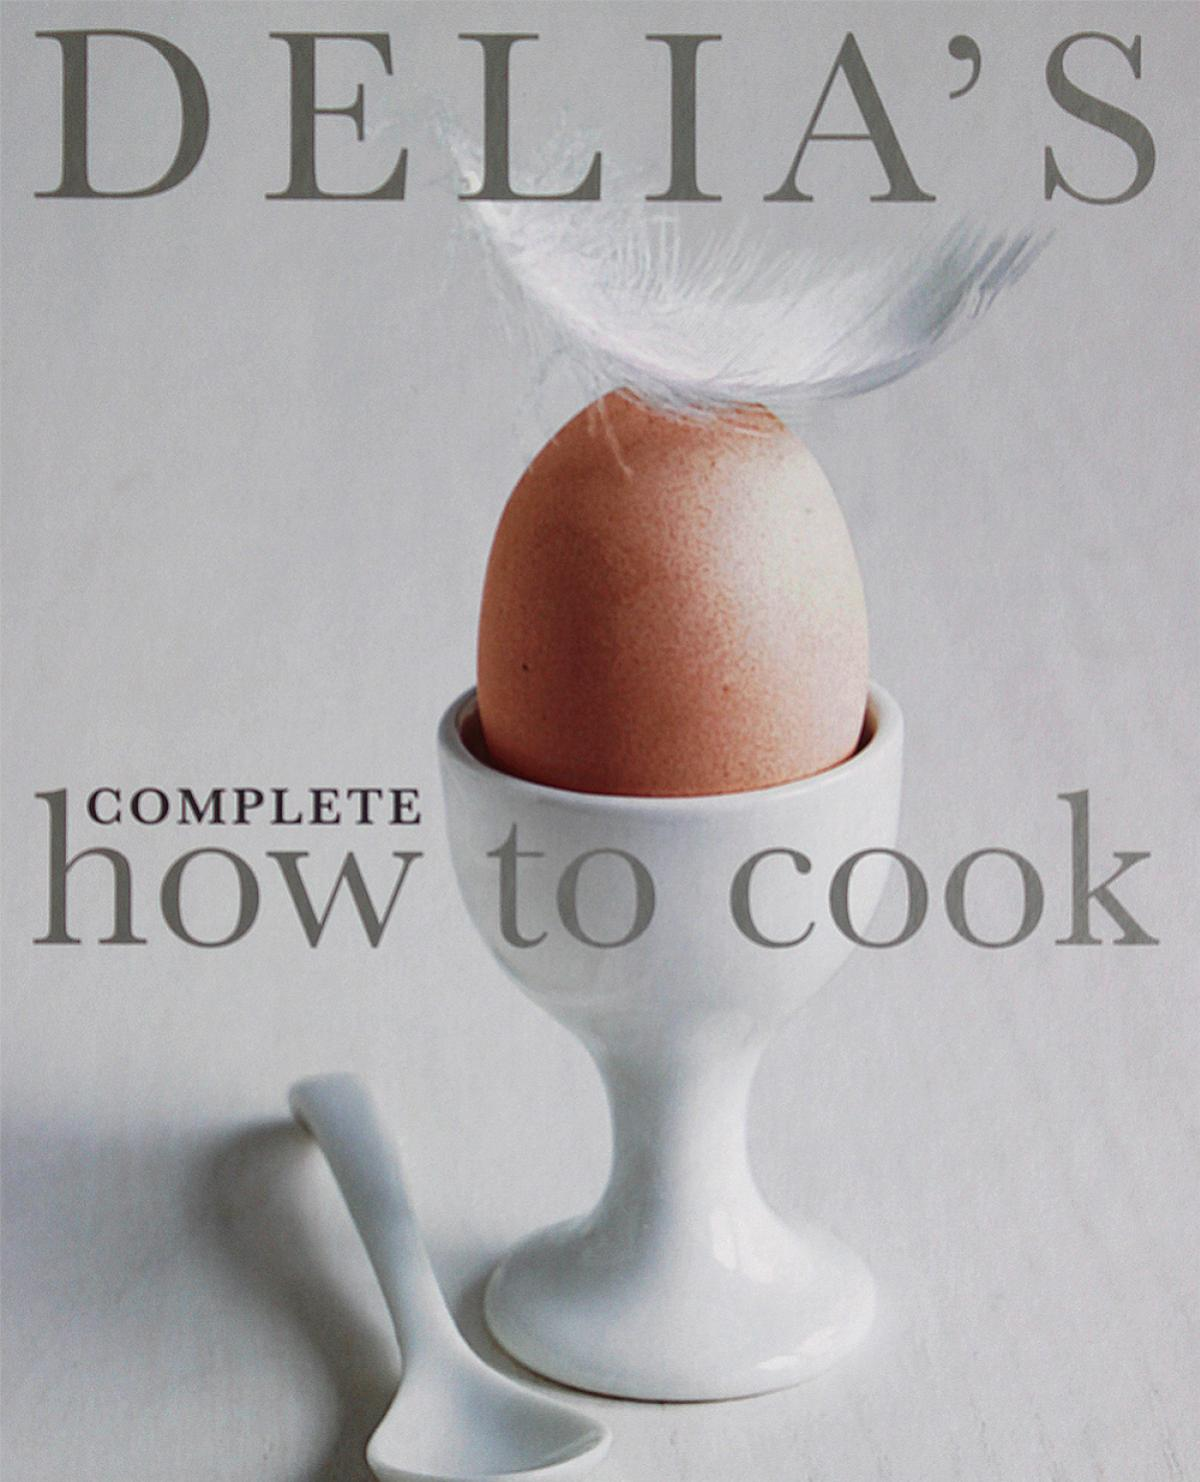 A picture of Delia's Delia's Complete How to Cook recipes